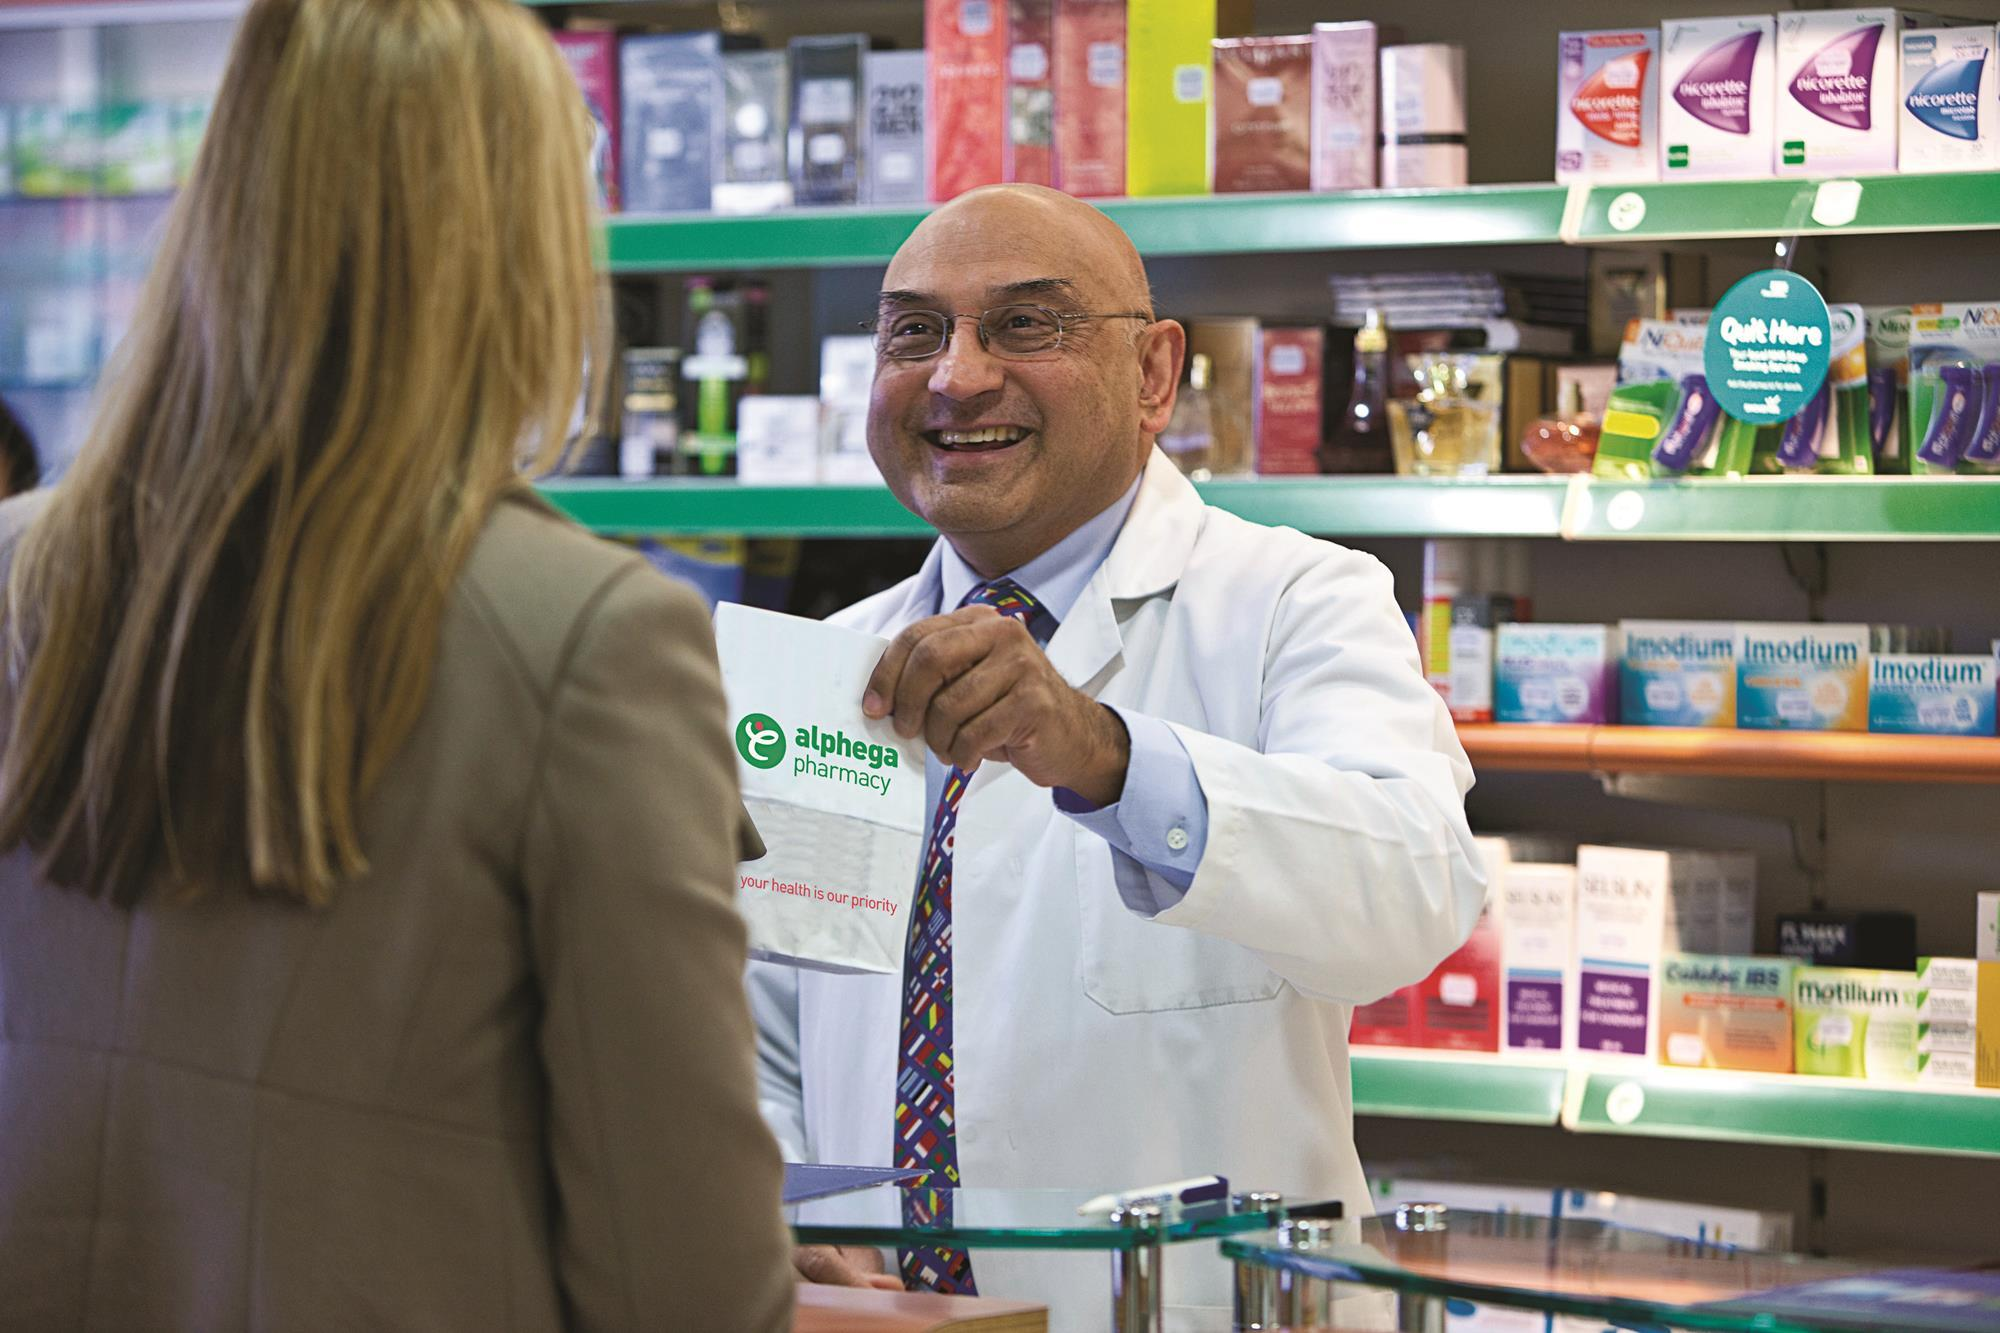 alliance boots targets uk independent pharmacies alphega alliance boots targets uk independent pharmacies alphega pharmacy brand analysis retail week